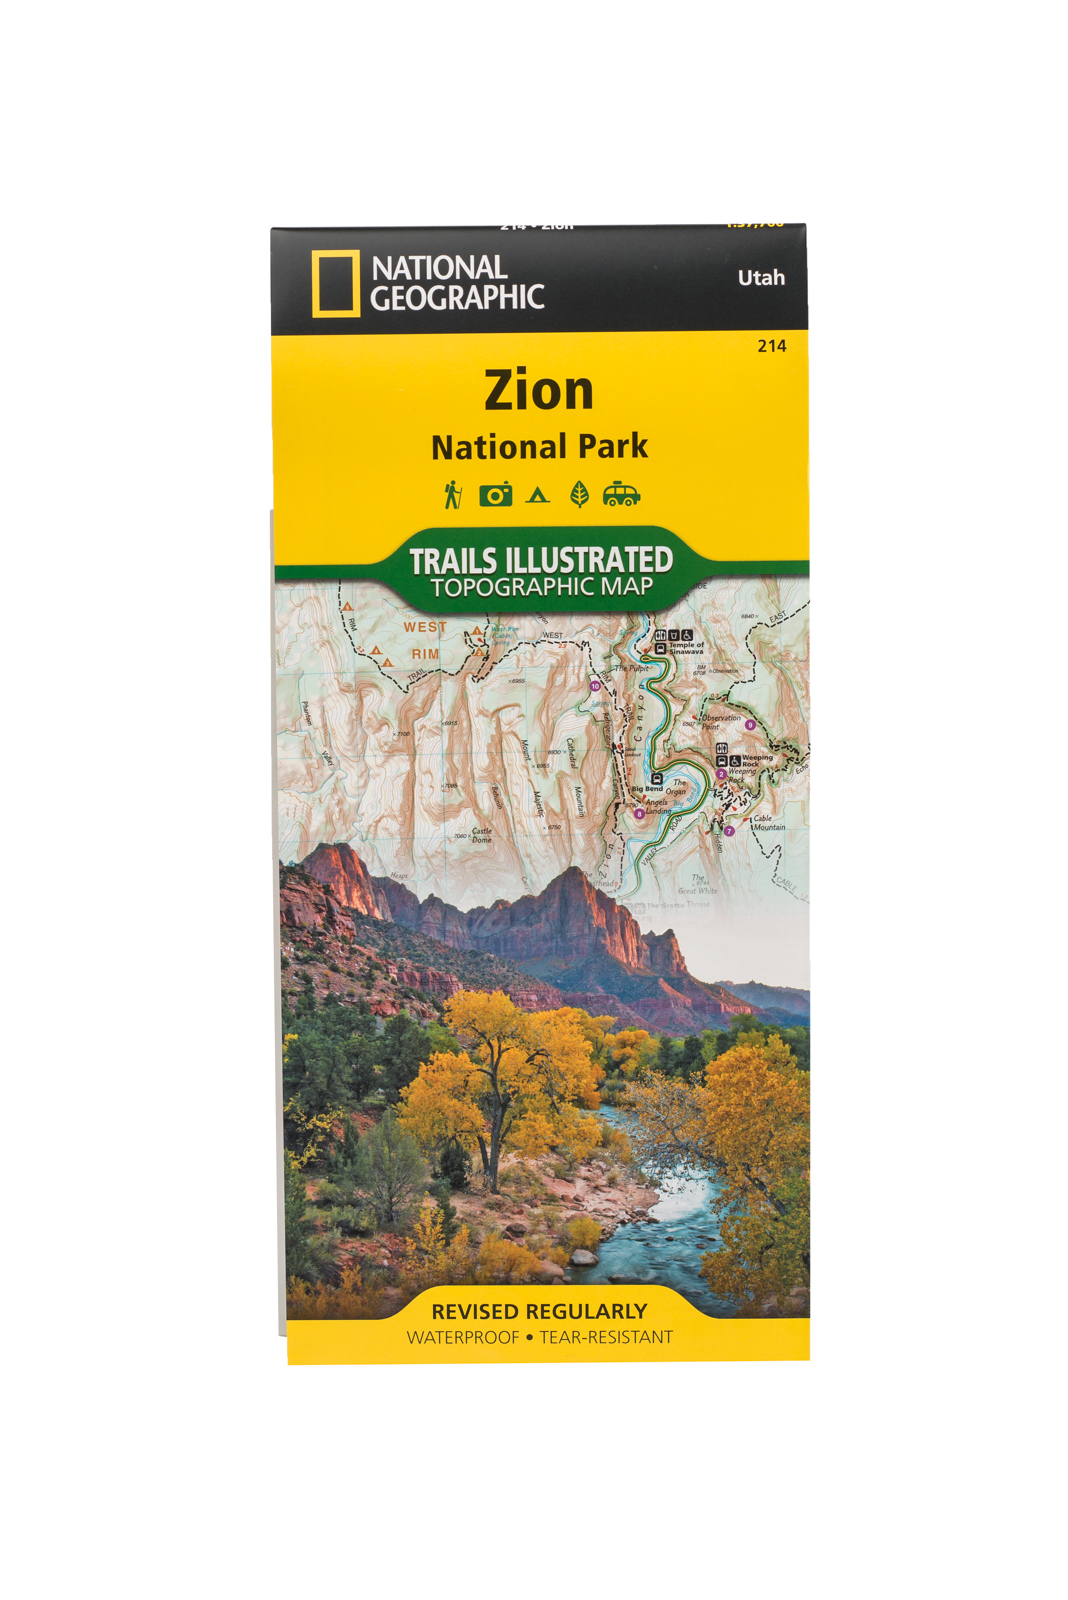 Zion National Park Trails Illustrated Map | Zion National Park ... on city of rocks national reserve map, st. george map, arches national park topographic map, redwood national park map, lake tahoe map, denali national park and preserve map, monument valley map, acadia national park on a map, salt lake city map, canyonlands national park road map, grand canyon map, angels landing trail map, zion subway map, symbol national park on map, antelope canyon map, bryce canyon np map, death valley map, sequoia national park map, bryce canyon road map, grand staircase escalante national monument map,